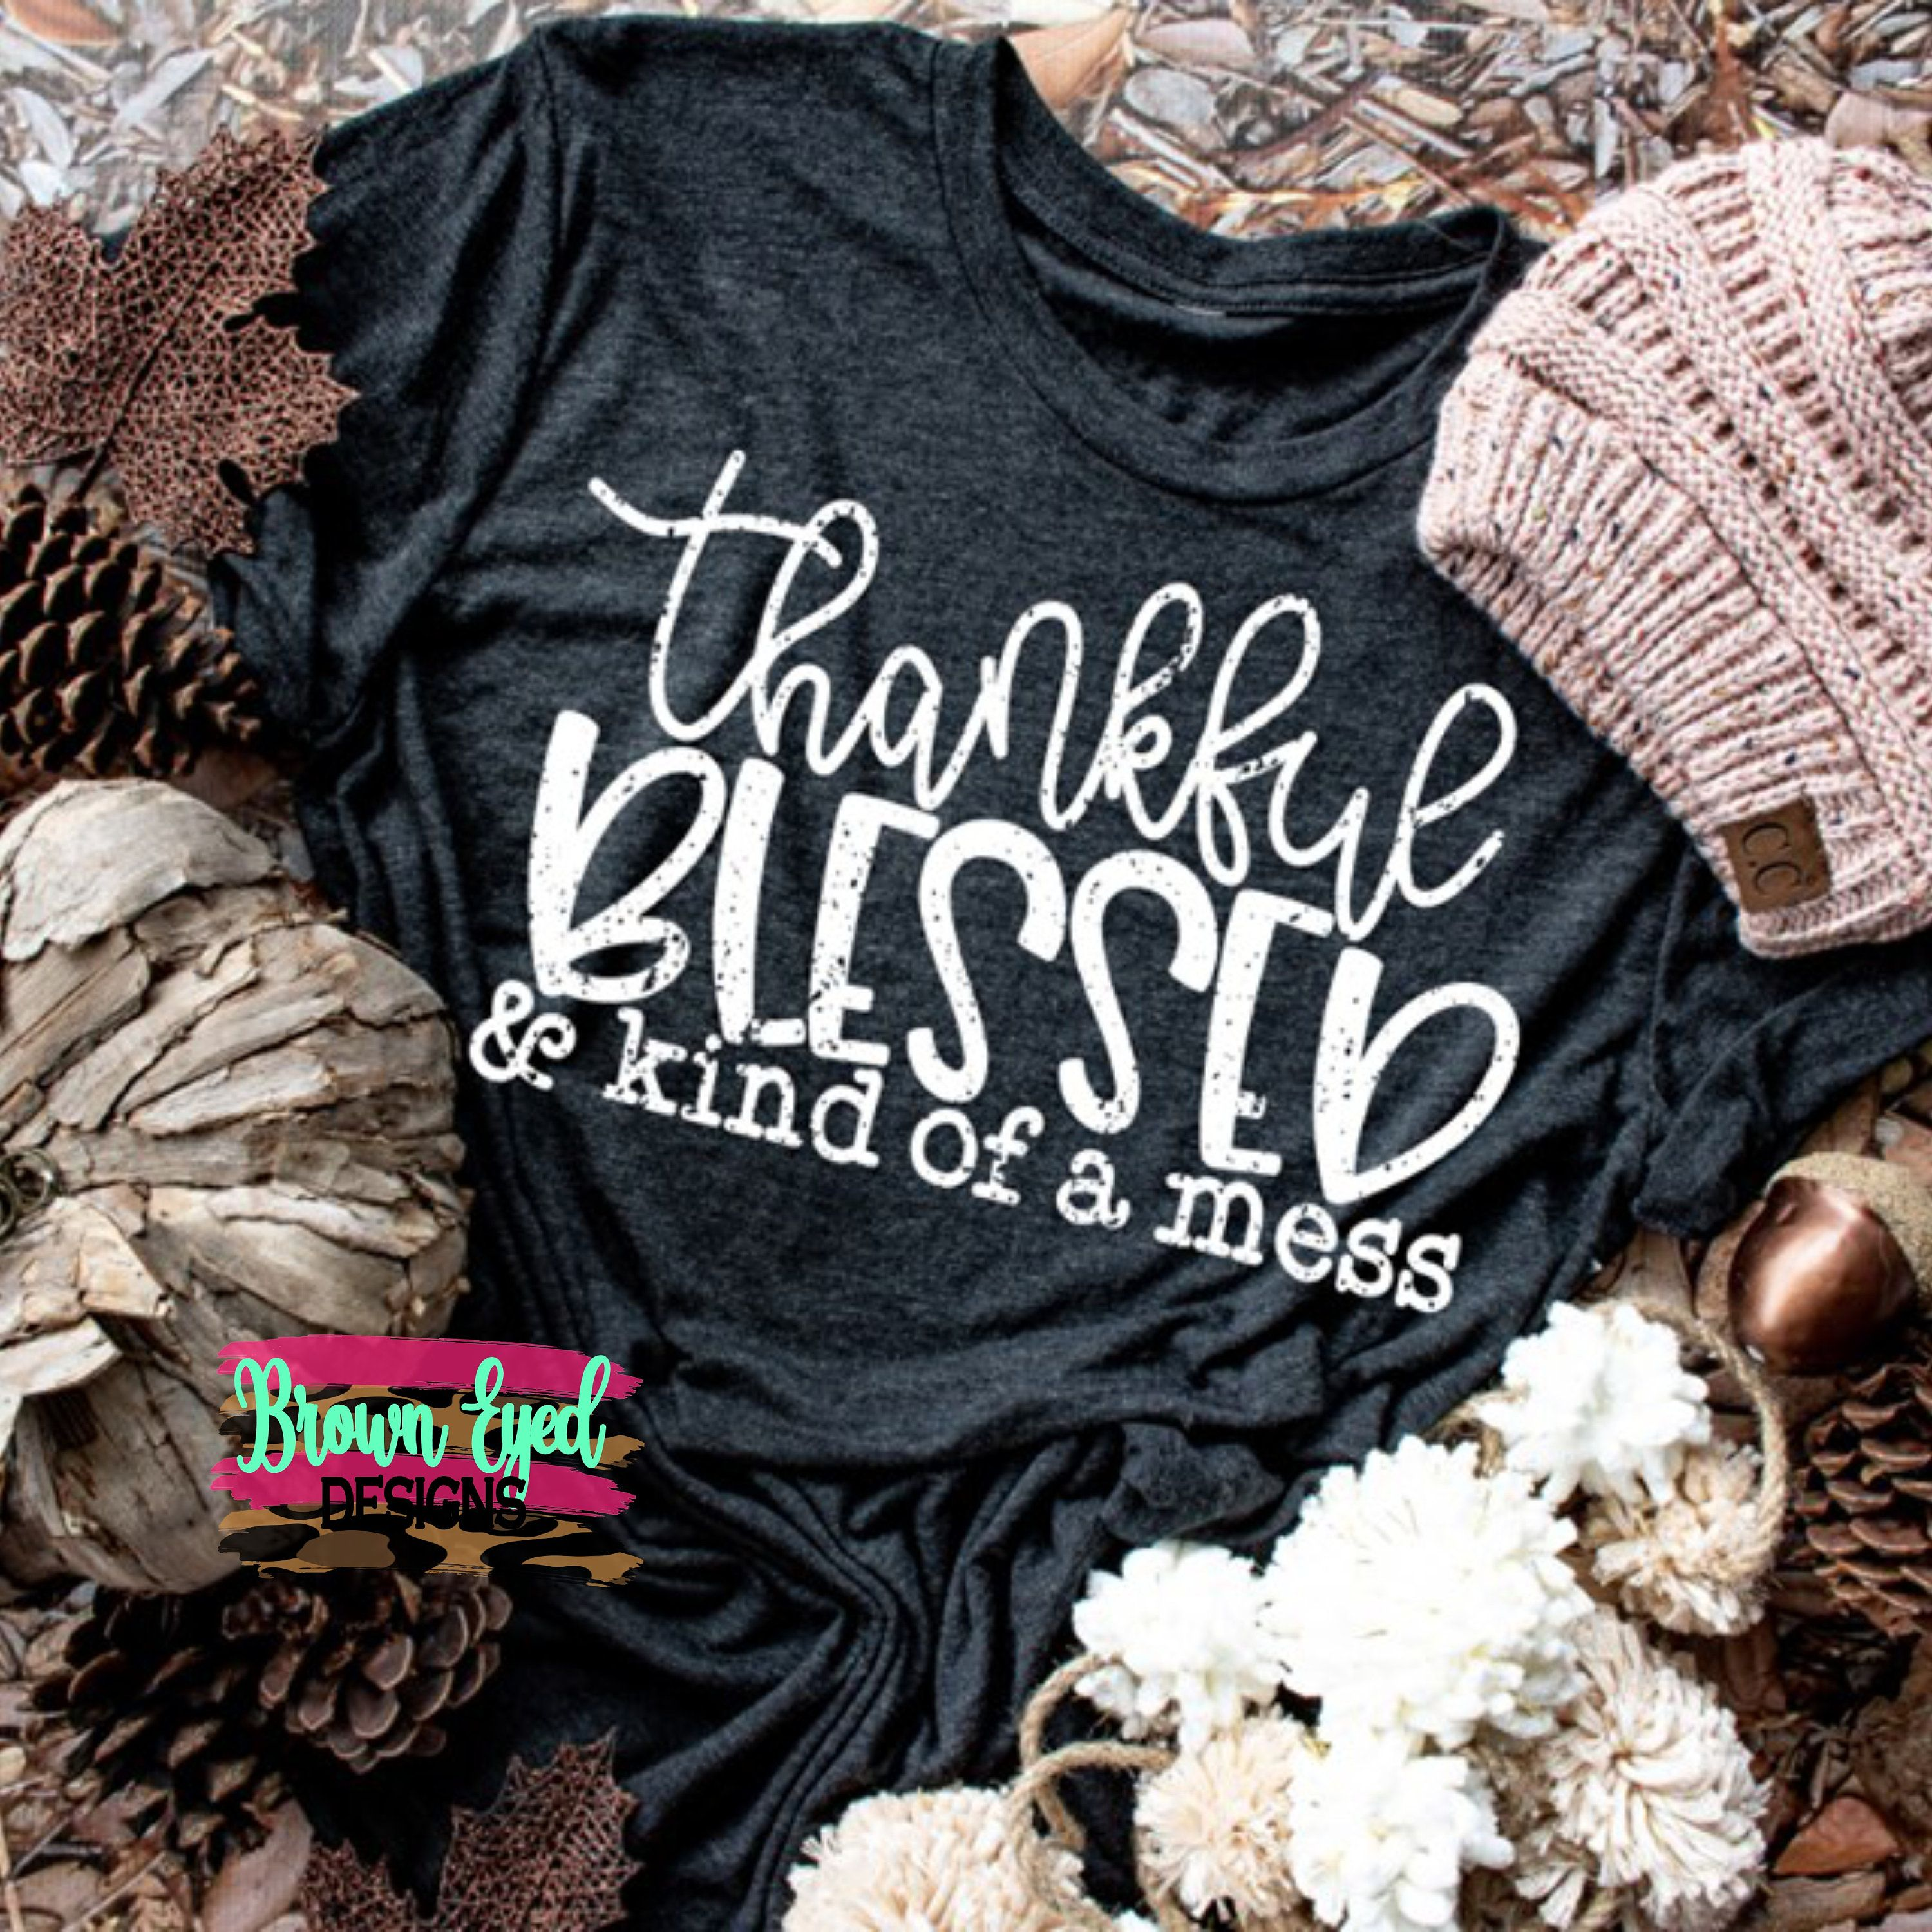 Thankful Blessed And Kind Of A Mess Thankful Shirt Etsy In 2020 Cute Shirt Designs Fall Shirts Autumn T Shirts